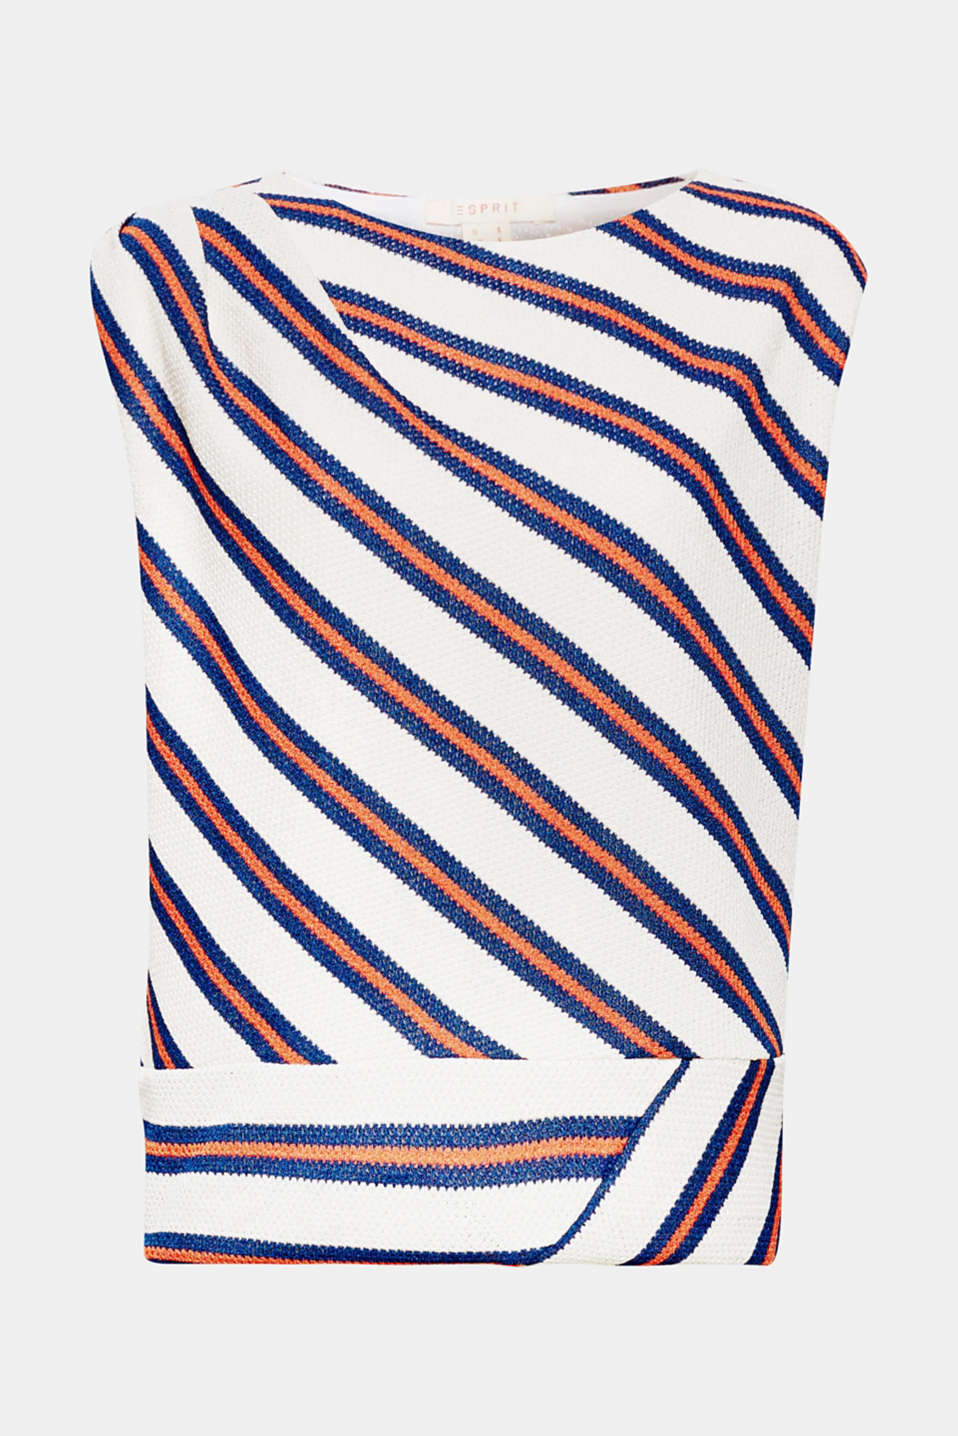 Gives any pair of trousers or skirt a fashionable boost: soft draped top made of thick, textured jersey with diagonal stripes, shoulder pleats and wide waistband!